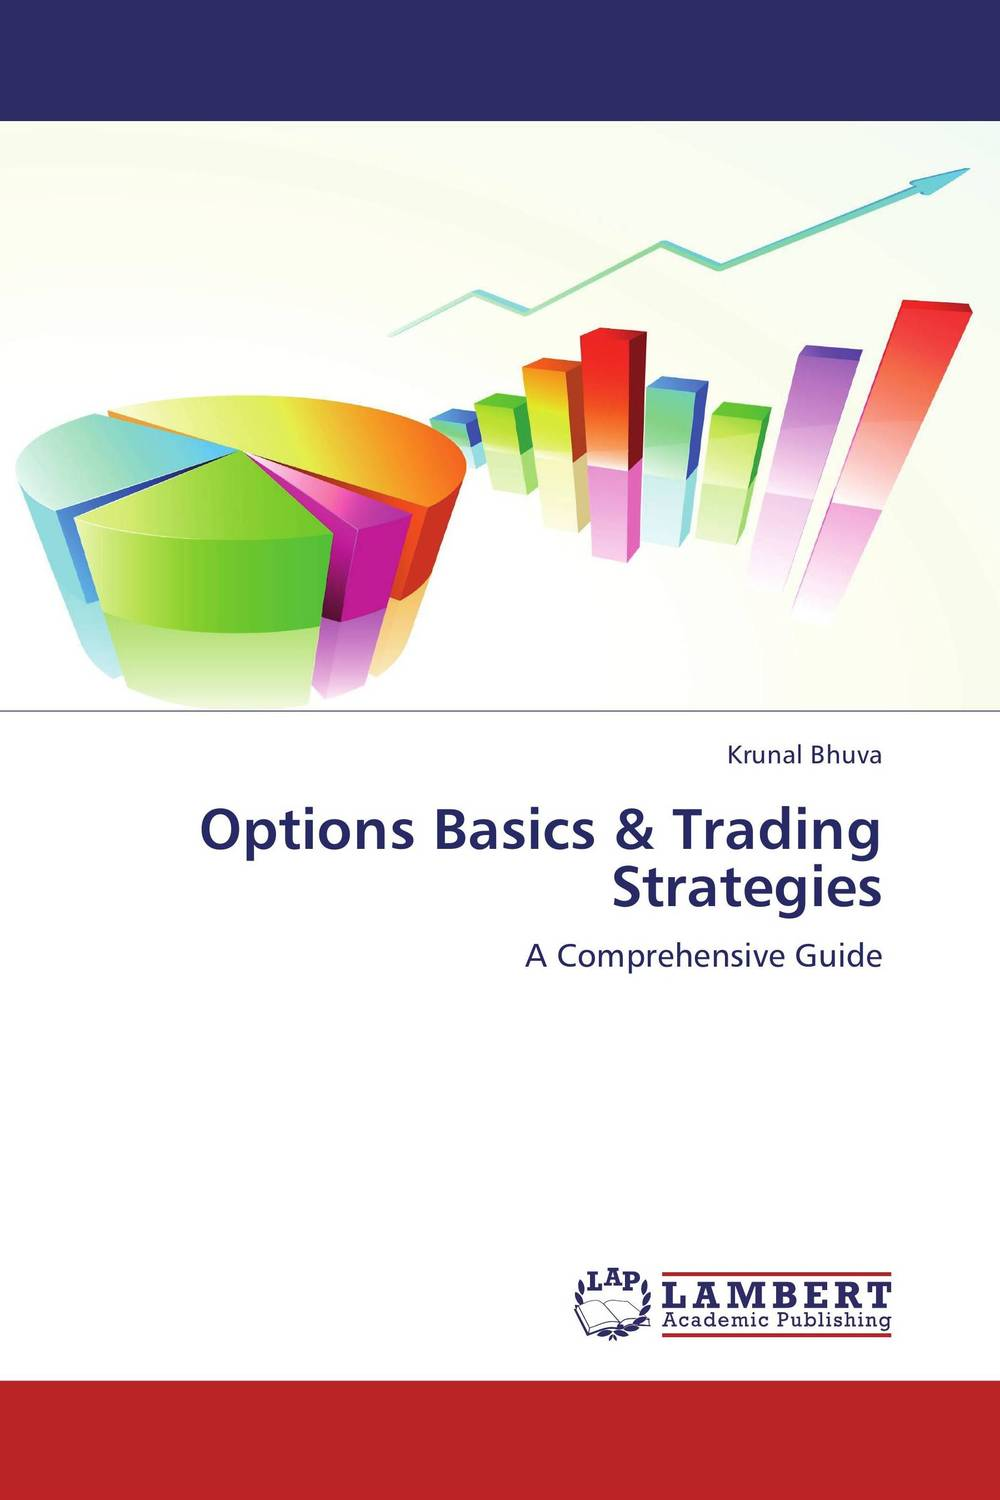 Options Basics & Trading Strategies moorad choudhry fixed income securities and derivatives handbook